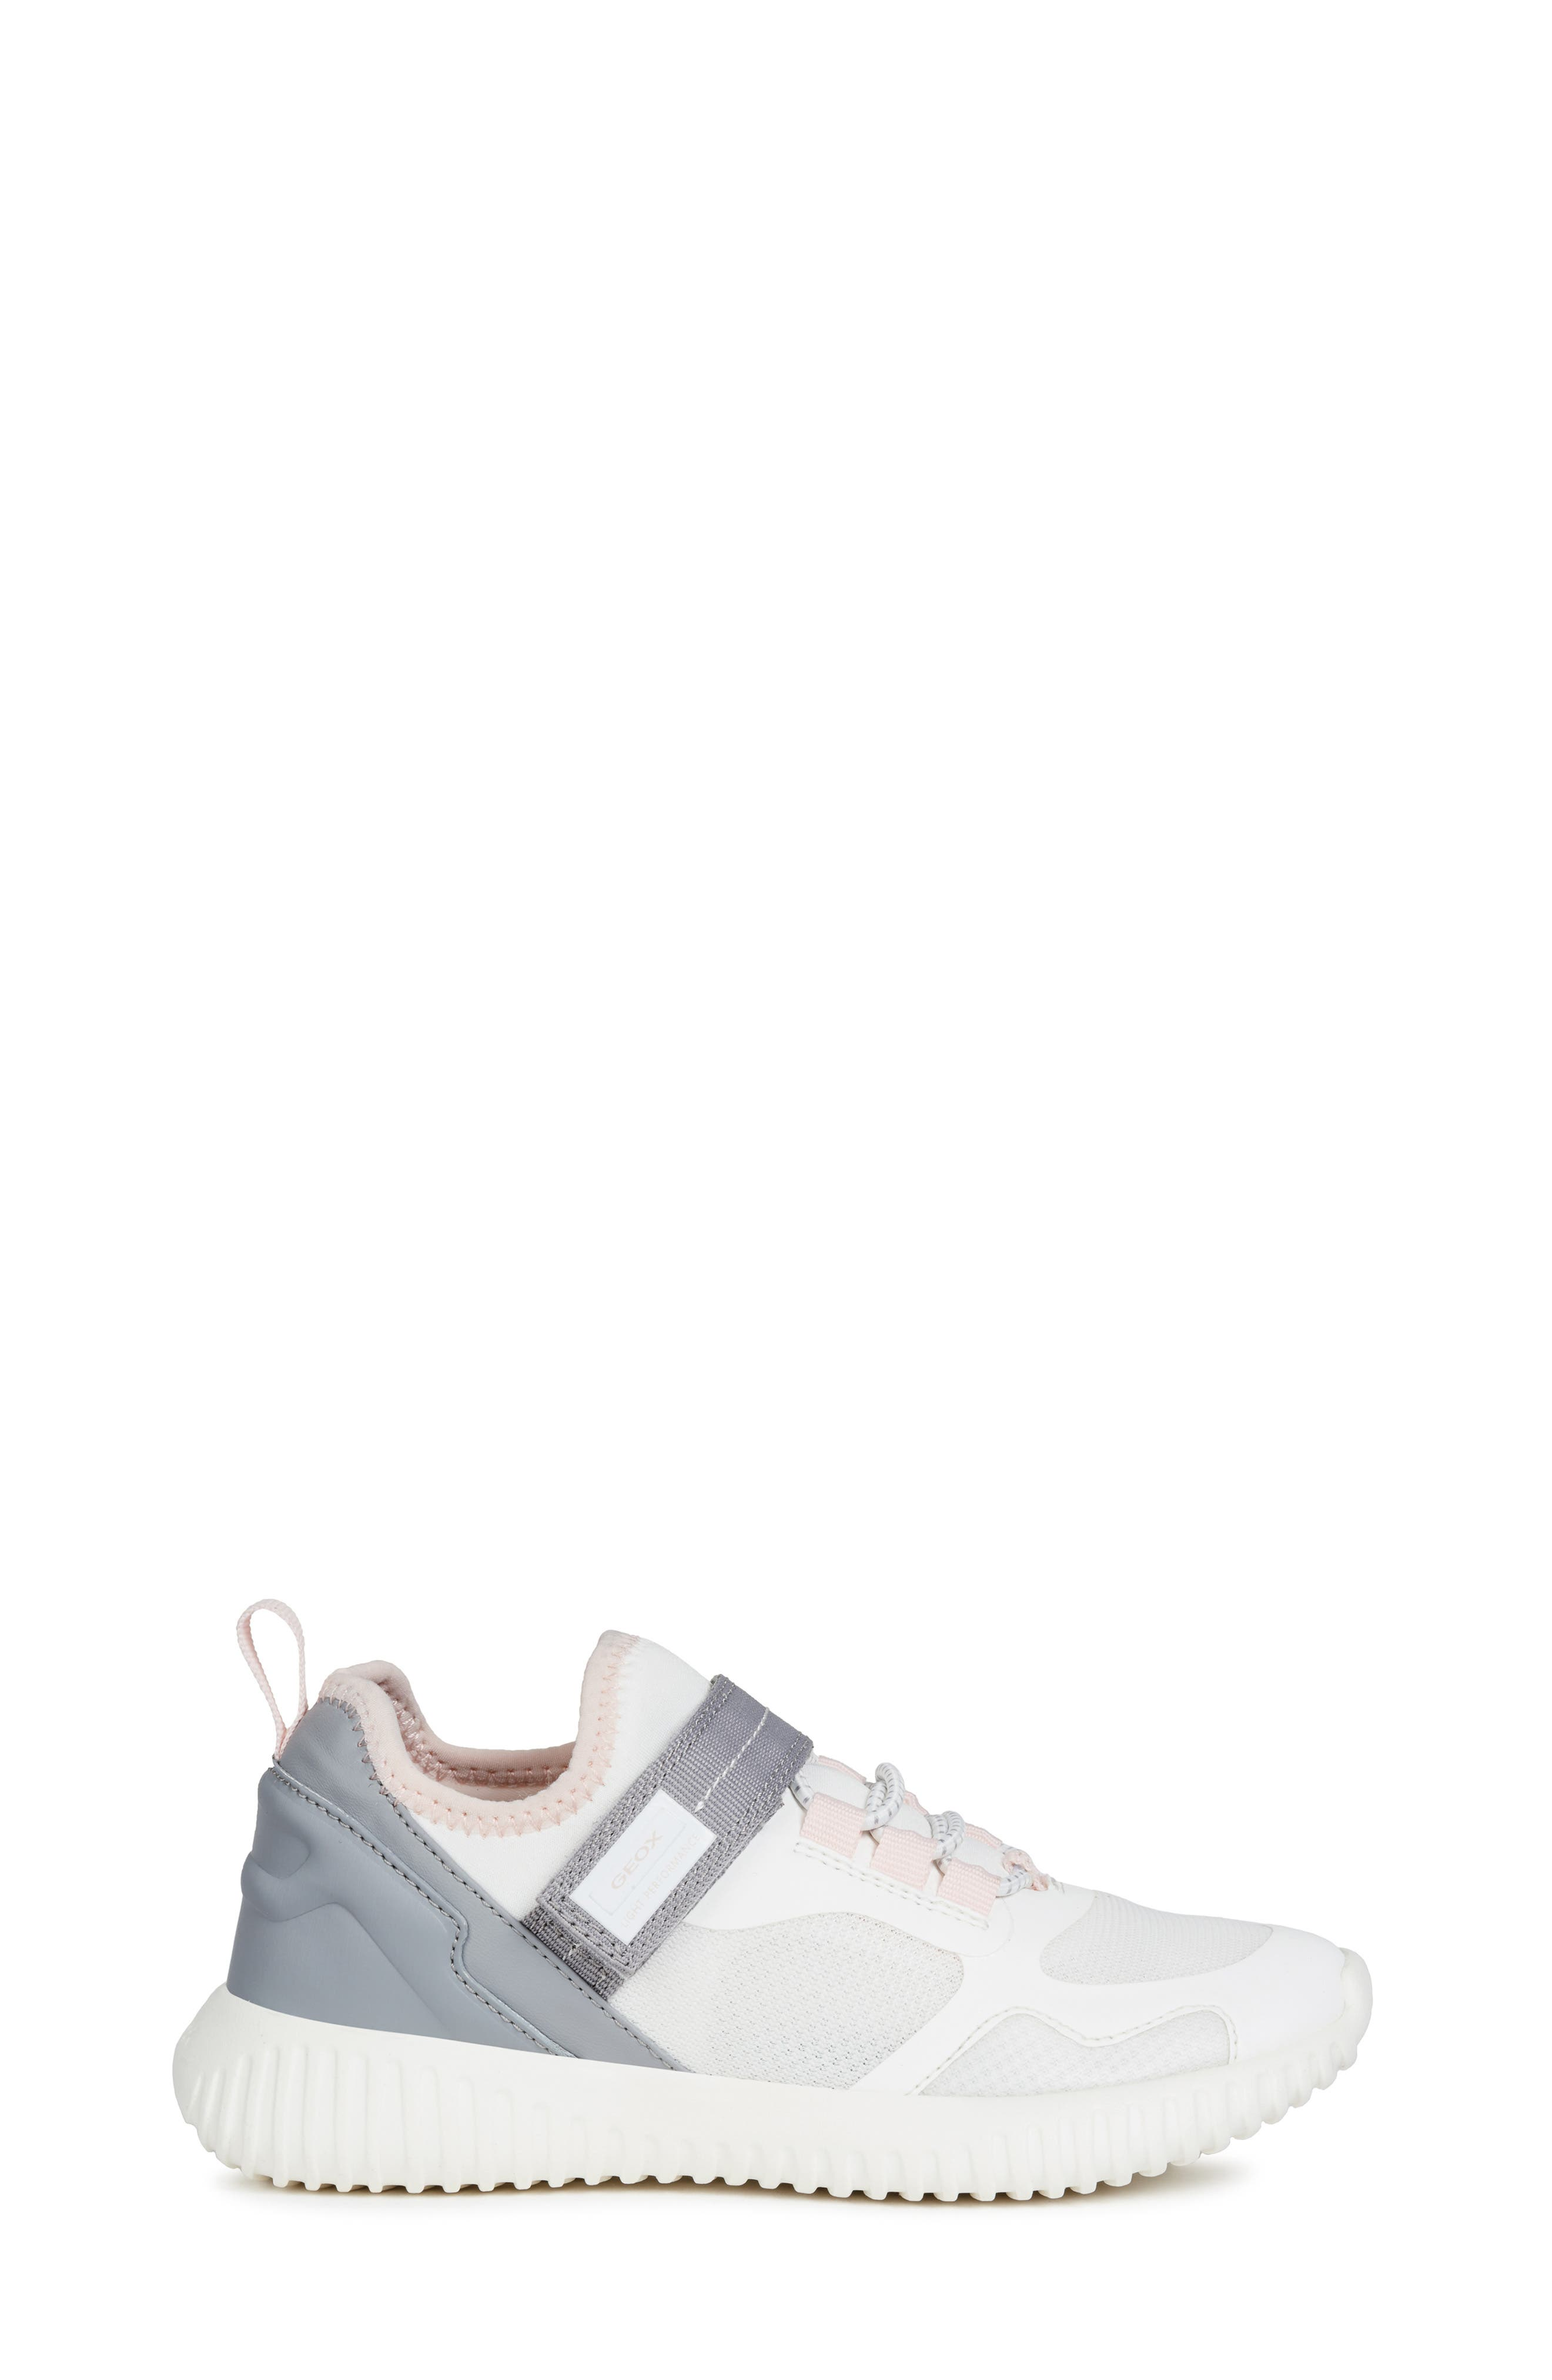 Waviness Sneaker,                             Alternate thumbnail 3, color,                             WHITE/ GREY